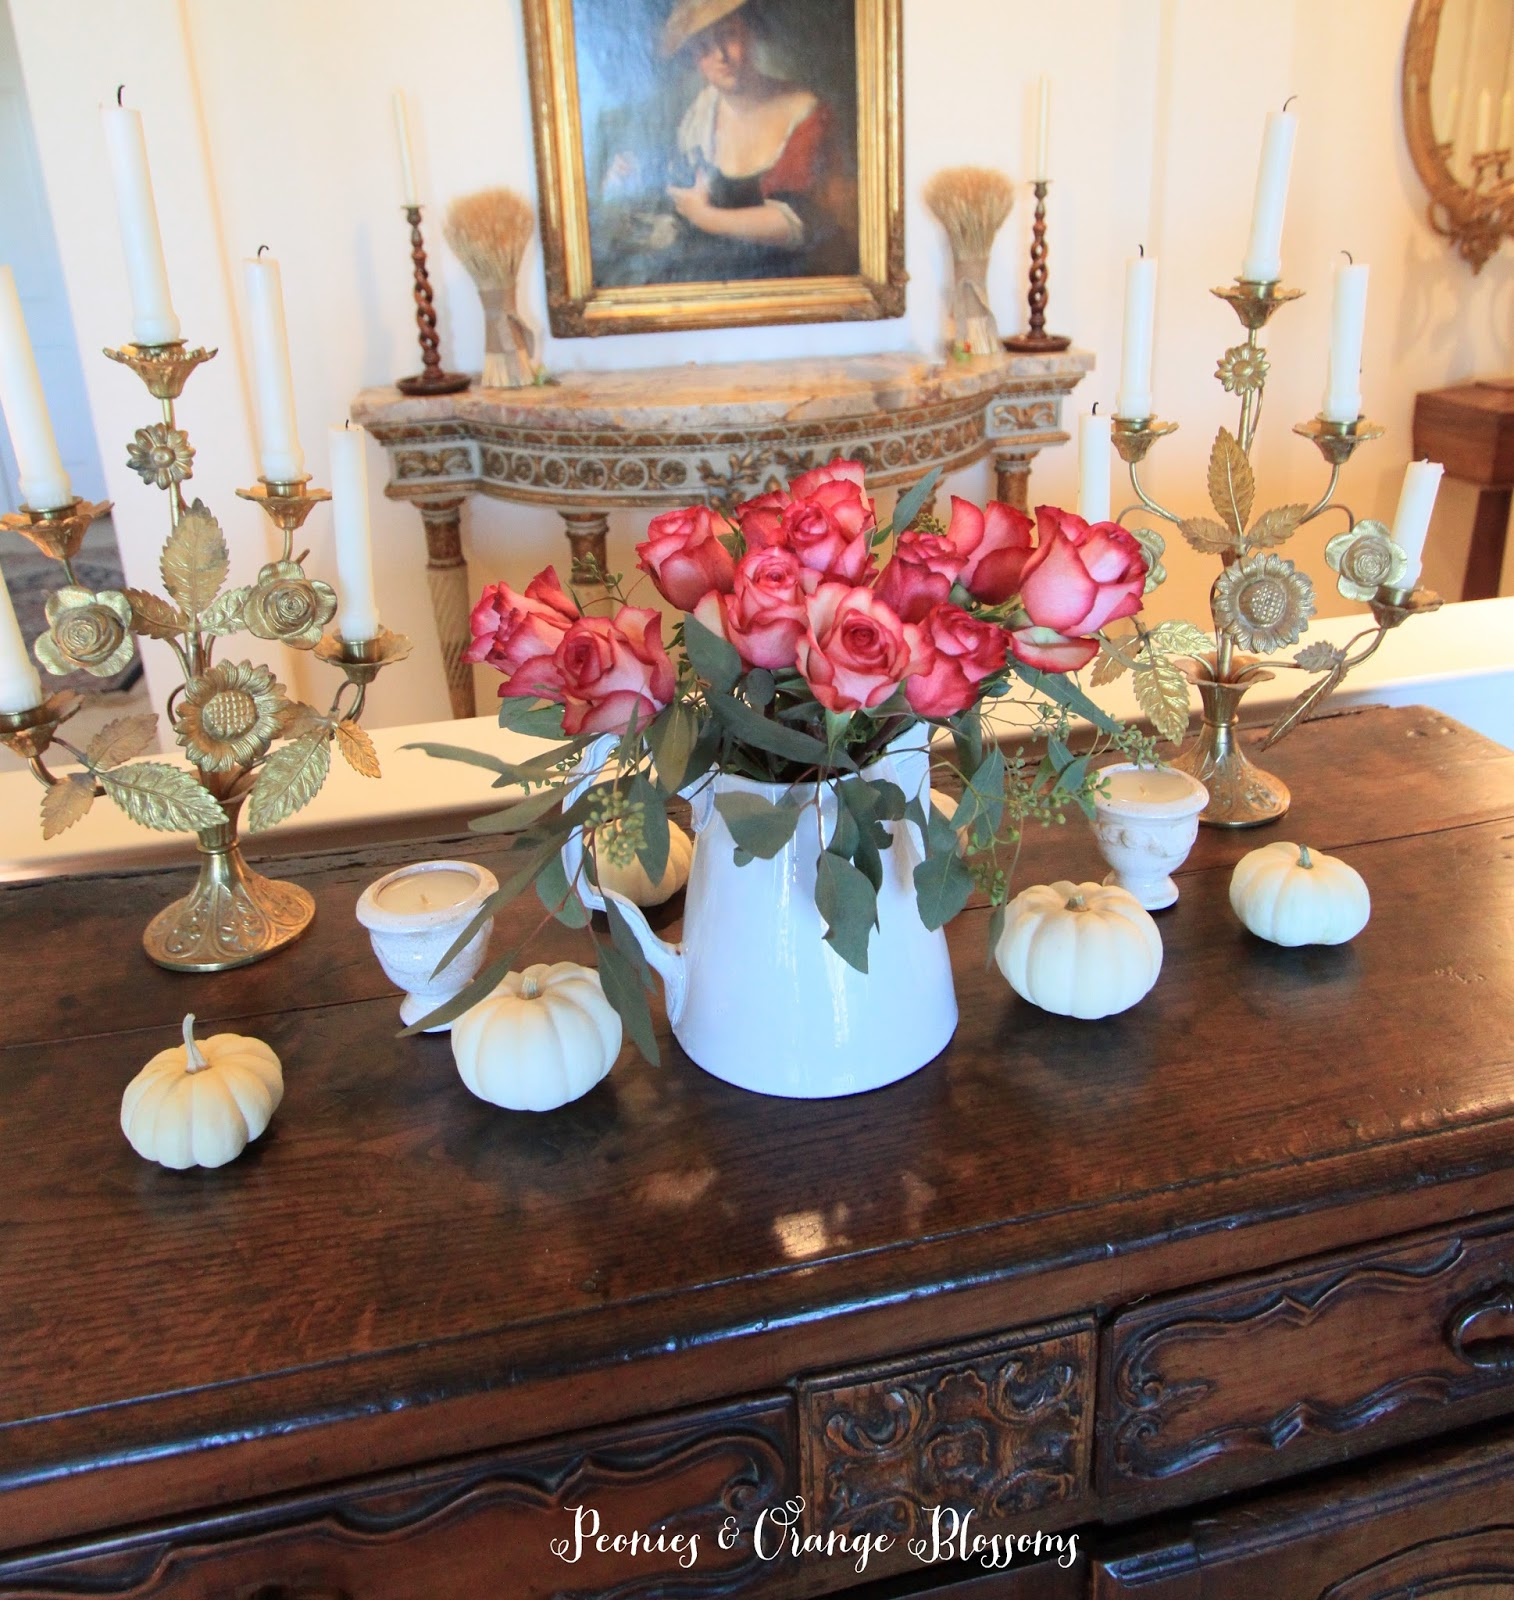 French Country Fall Decor ideas and How to Create a French Country Vignette for the Holidays in 5 minutes!